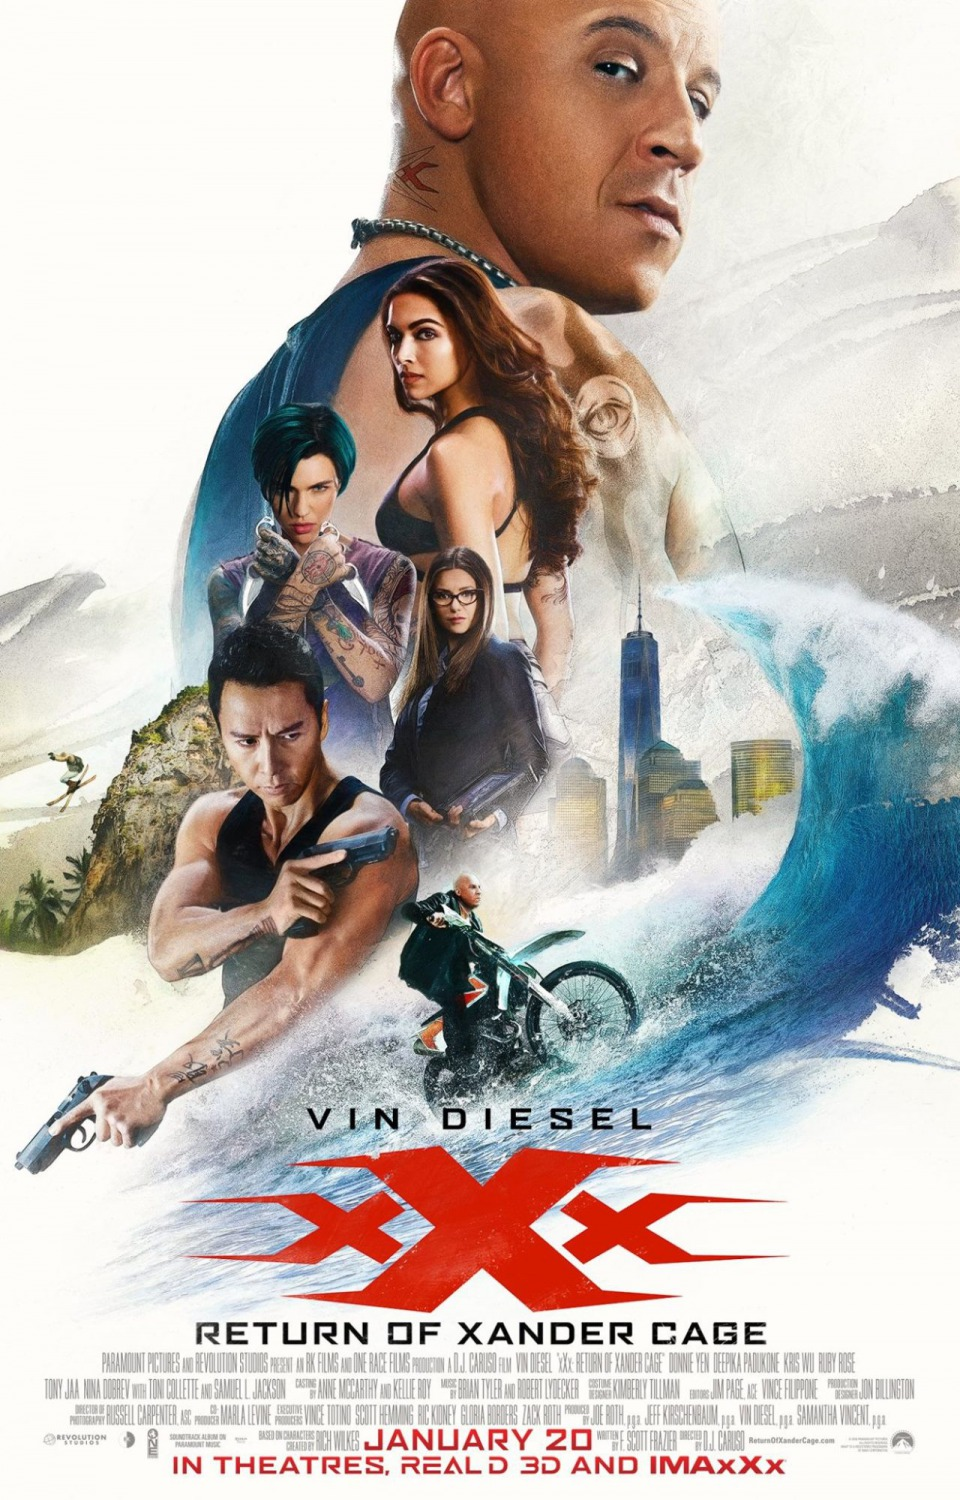 8 - xXx Return of Xander Cage